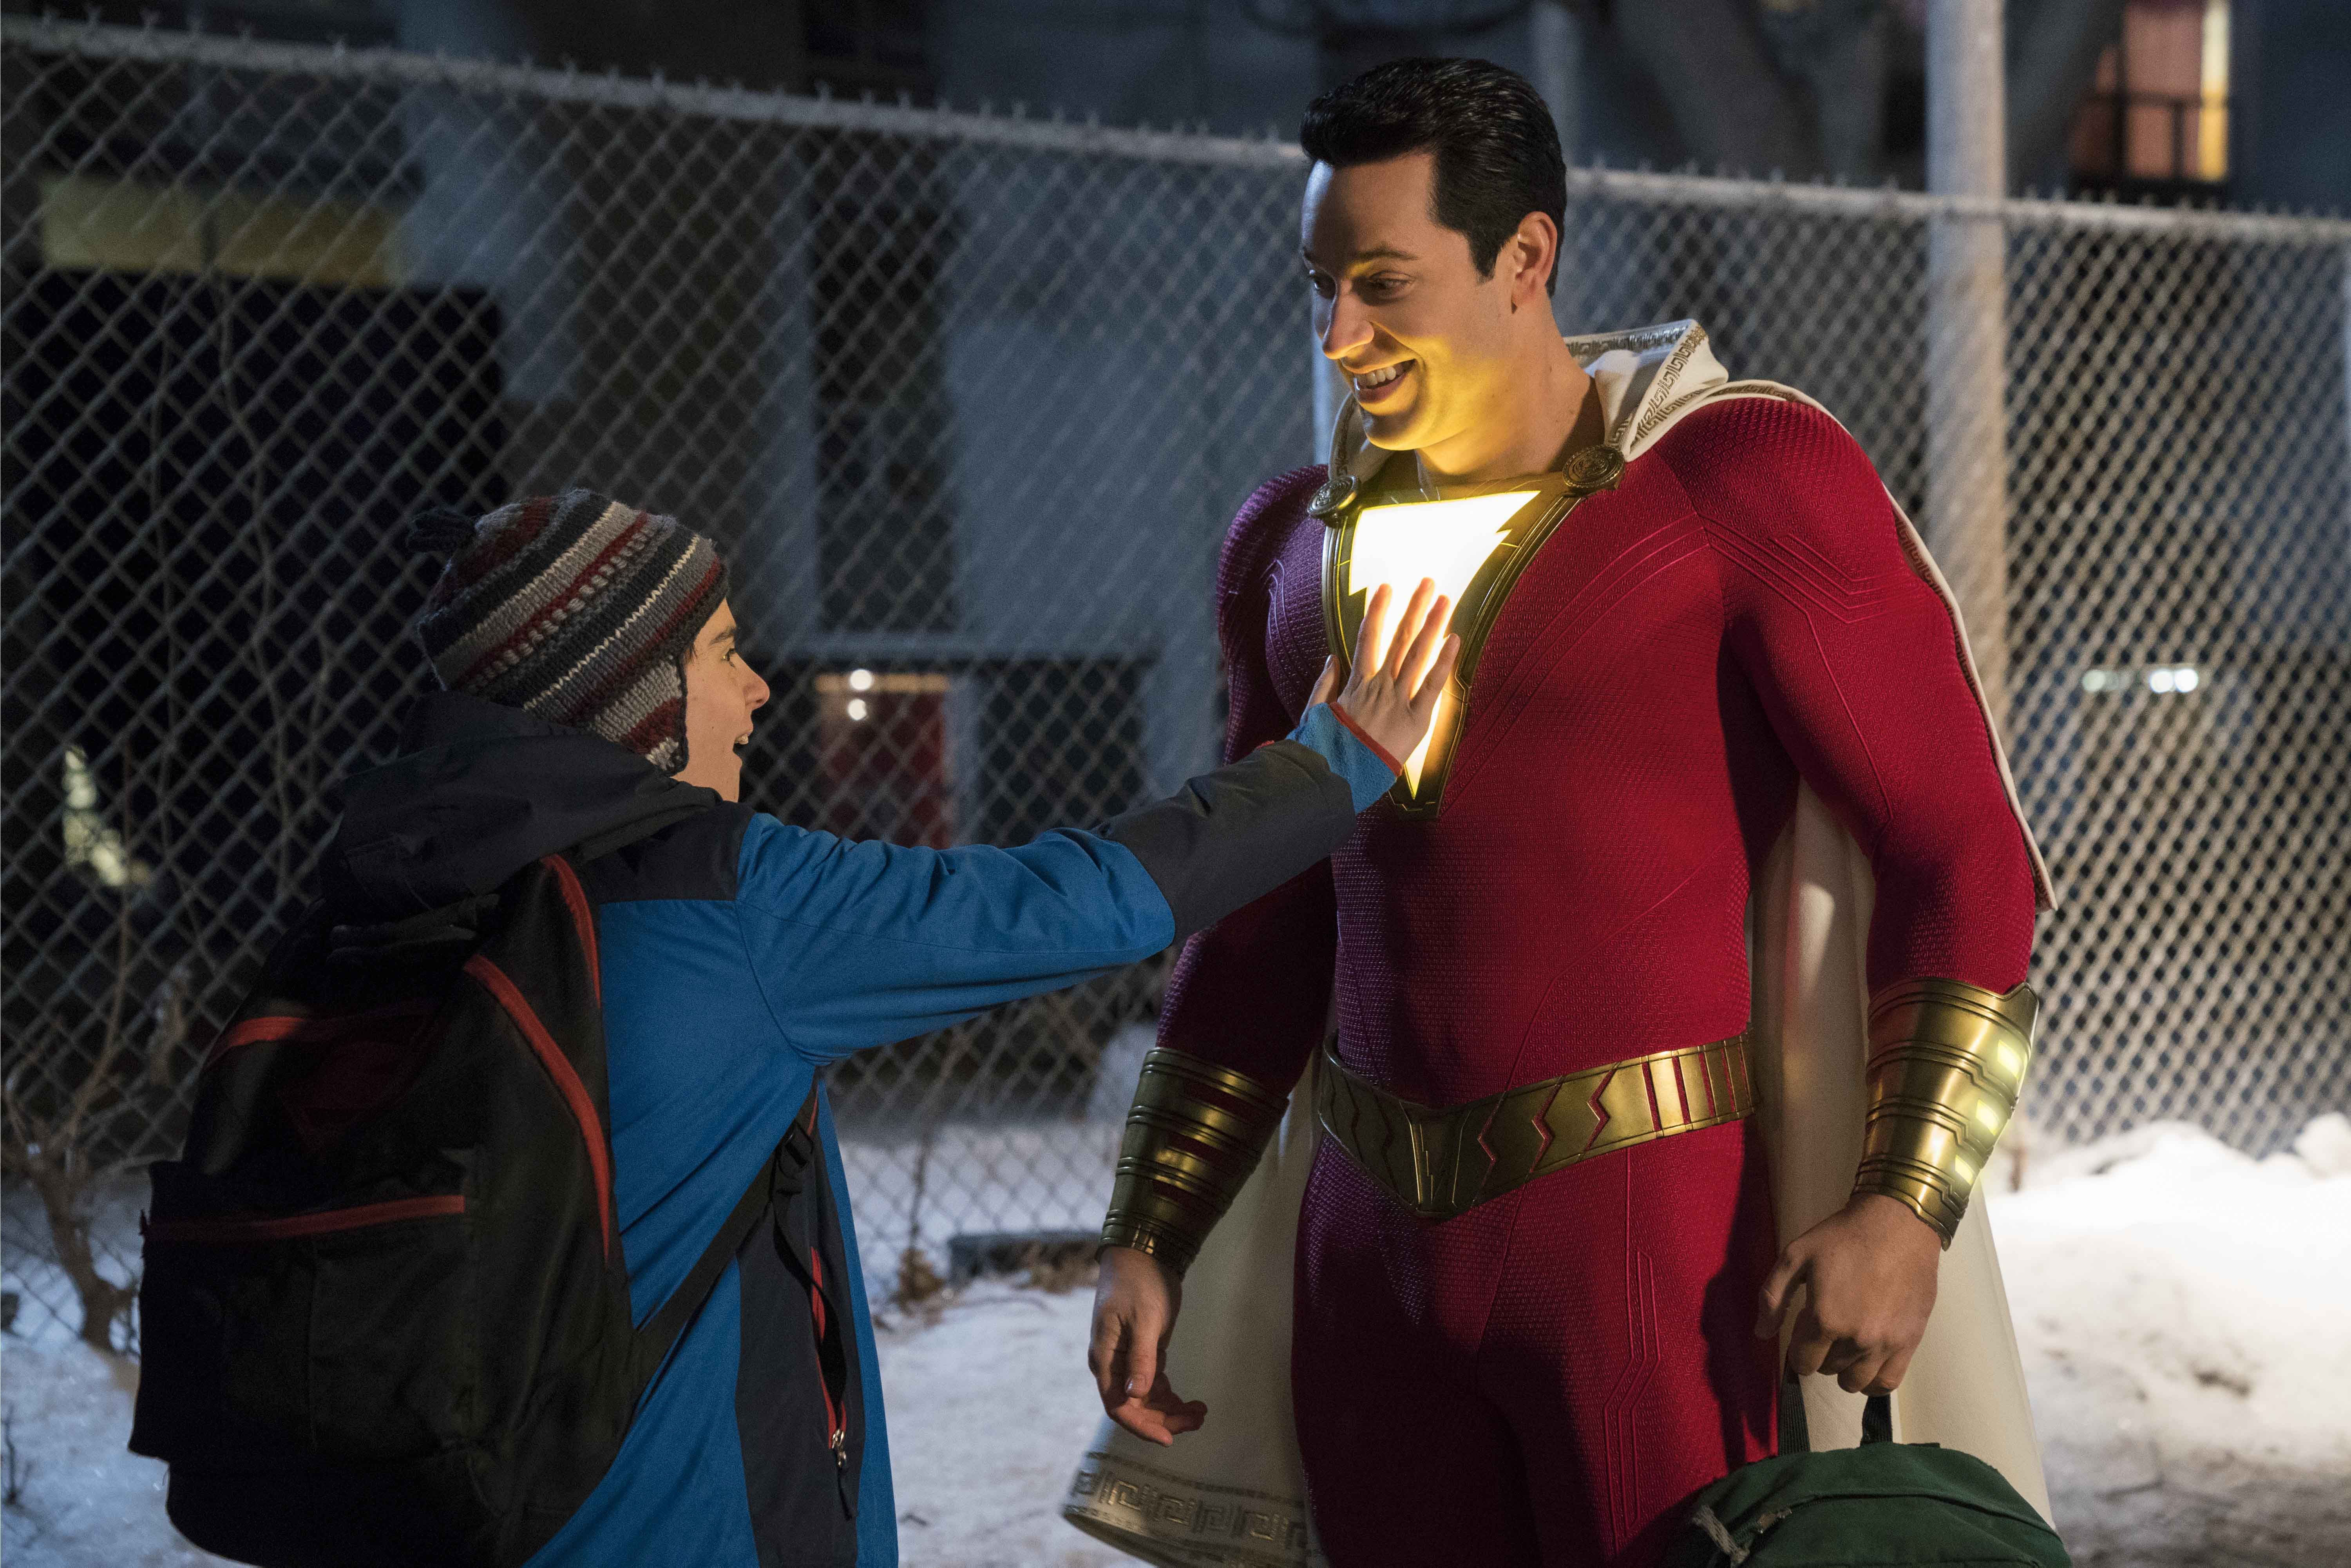 Jack Dylan Grazer and Zachary Levi star in a scene from the movie